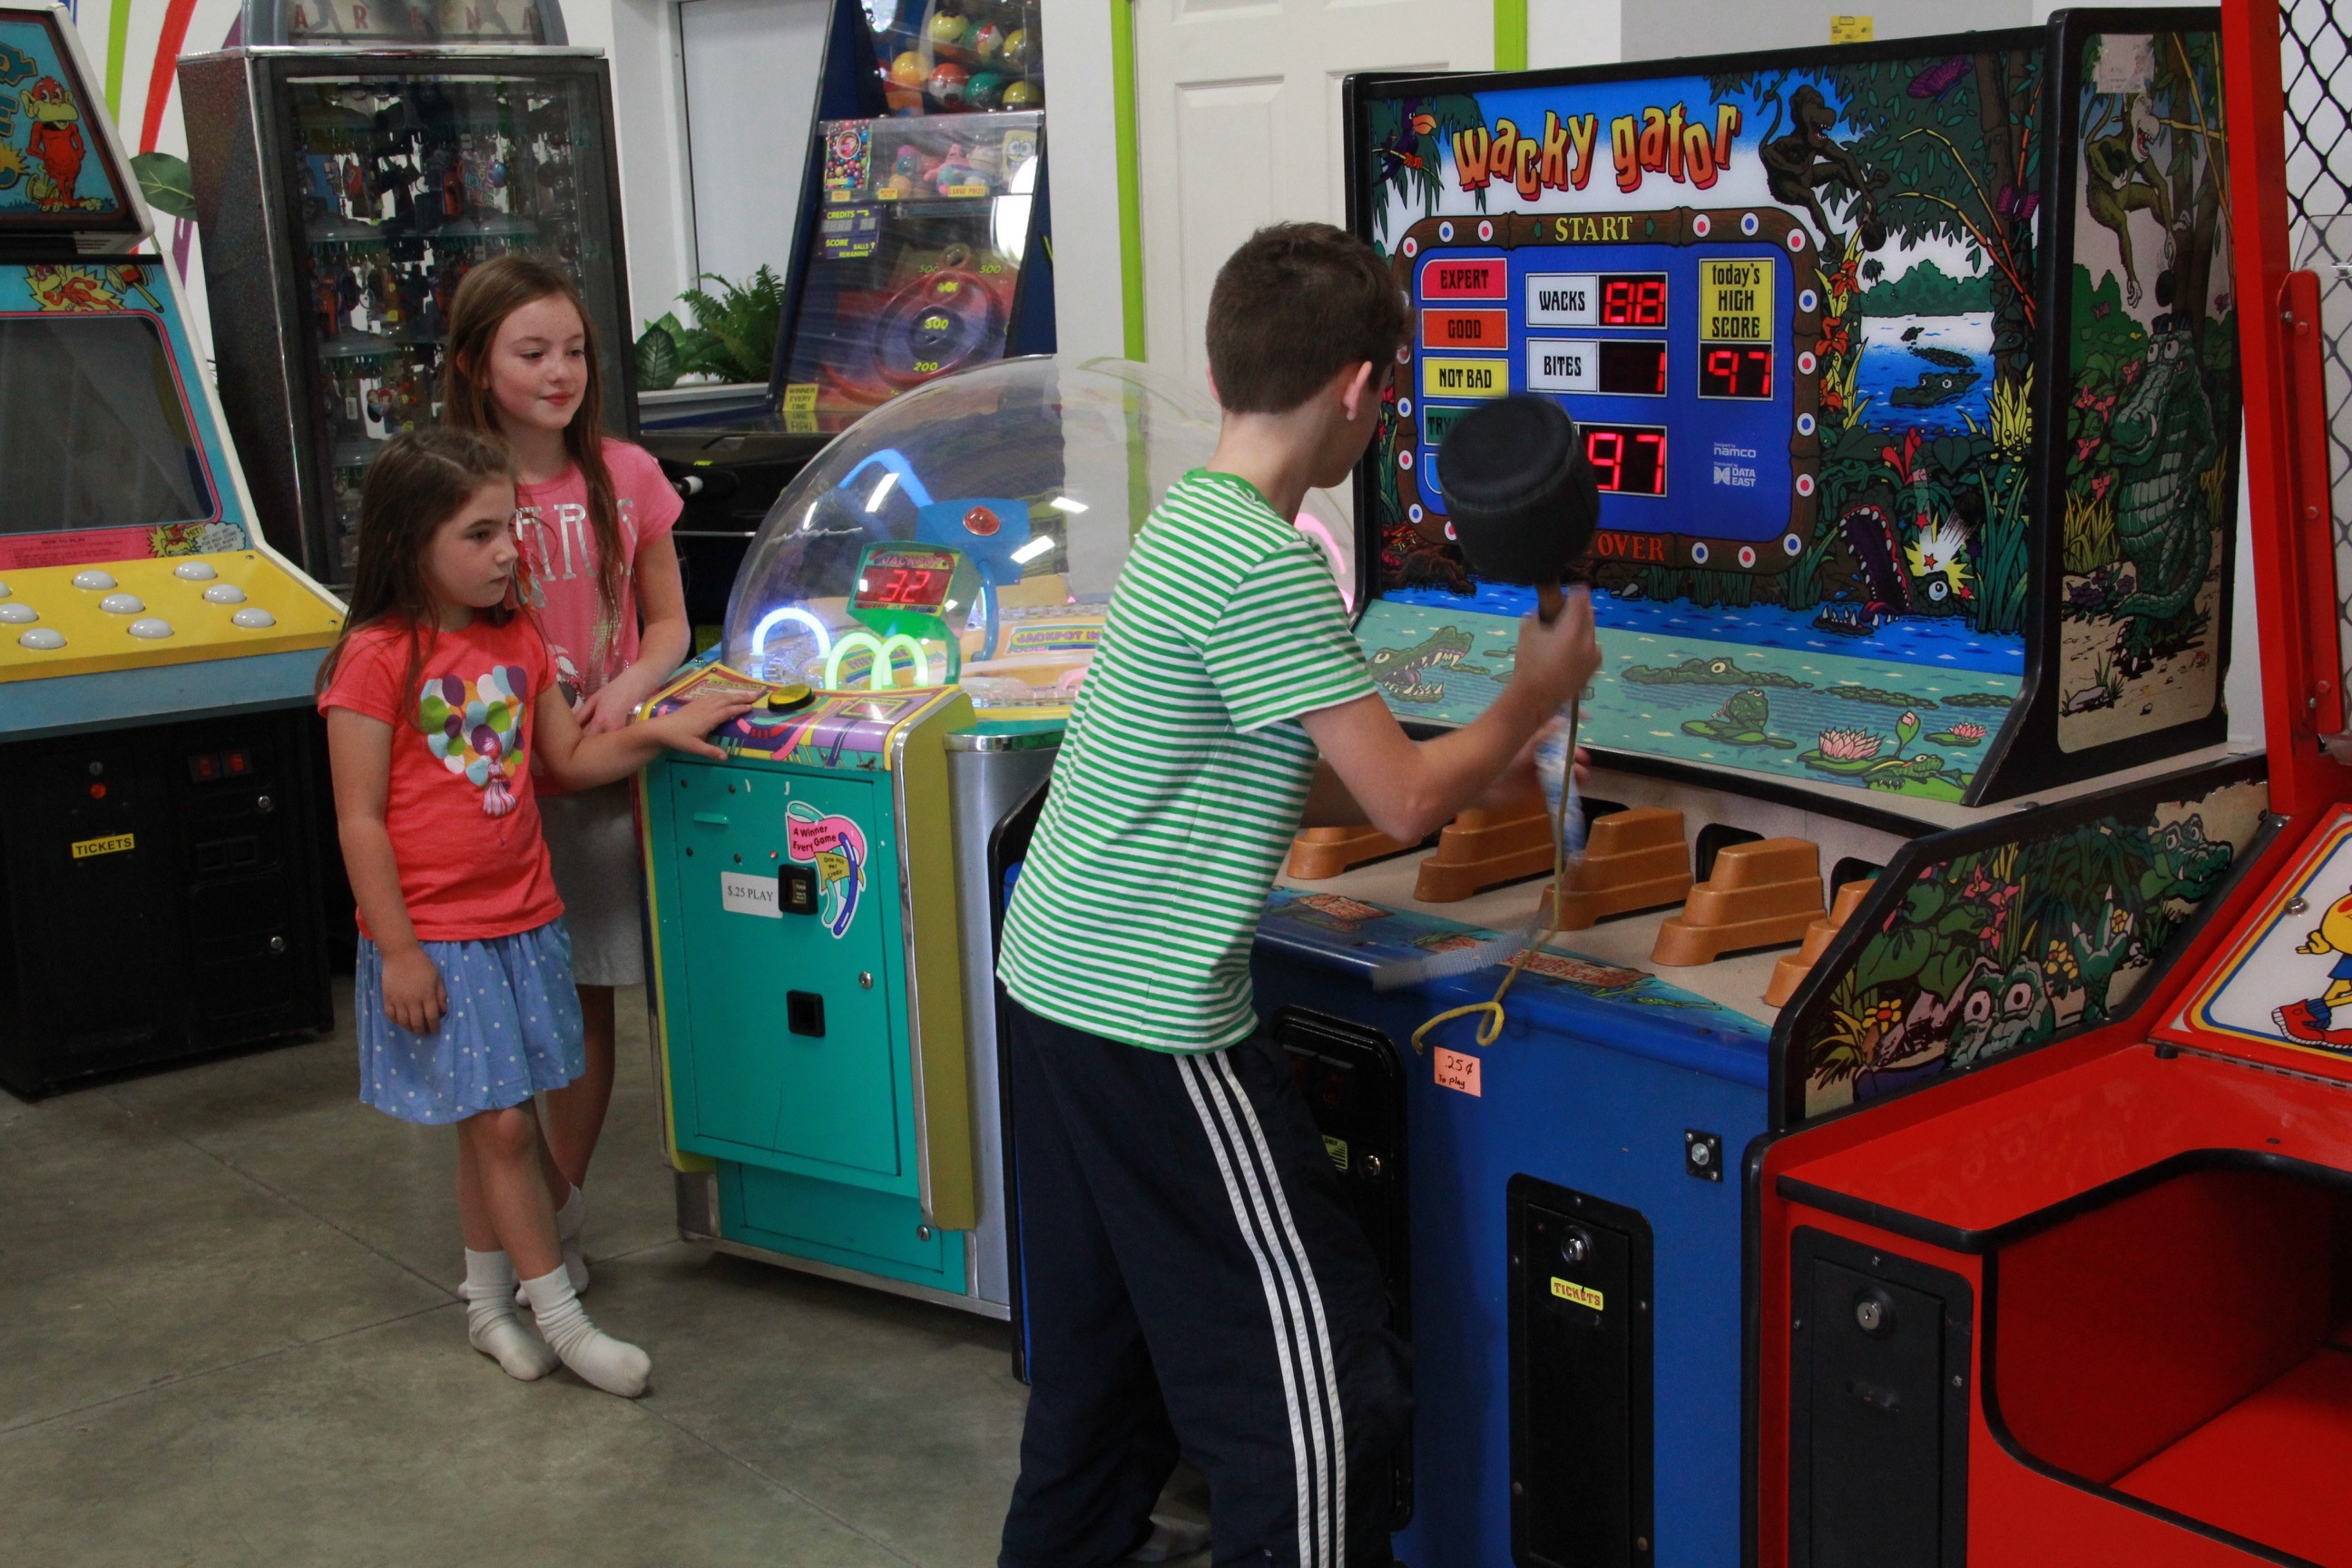 Big-Bounce-Arcade-games